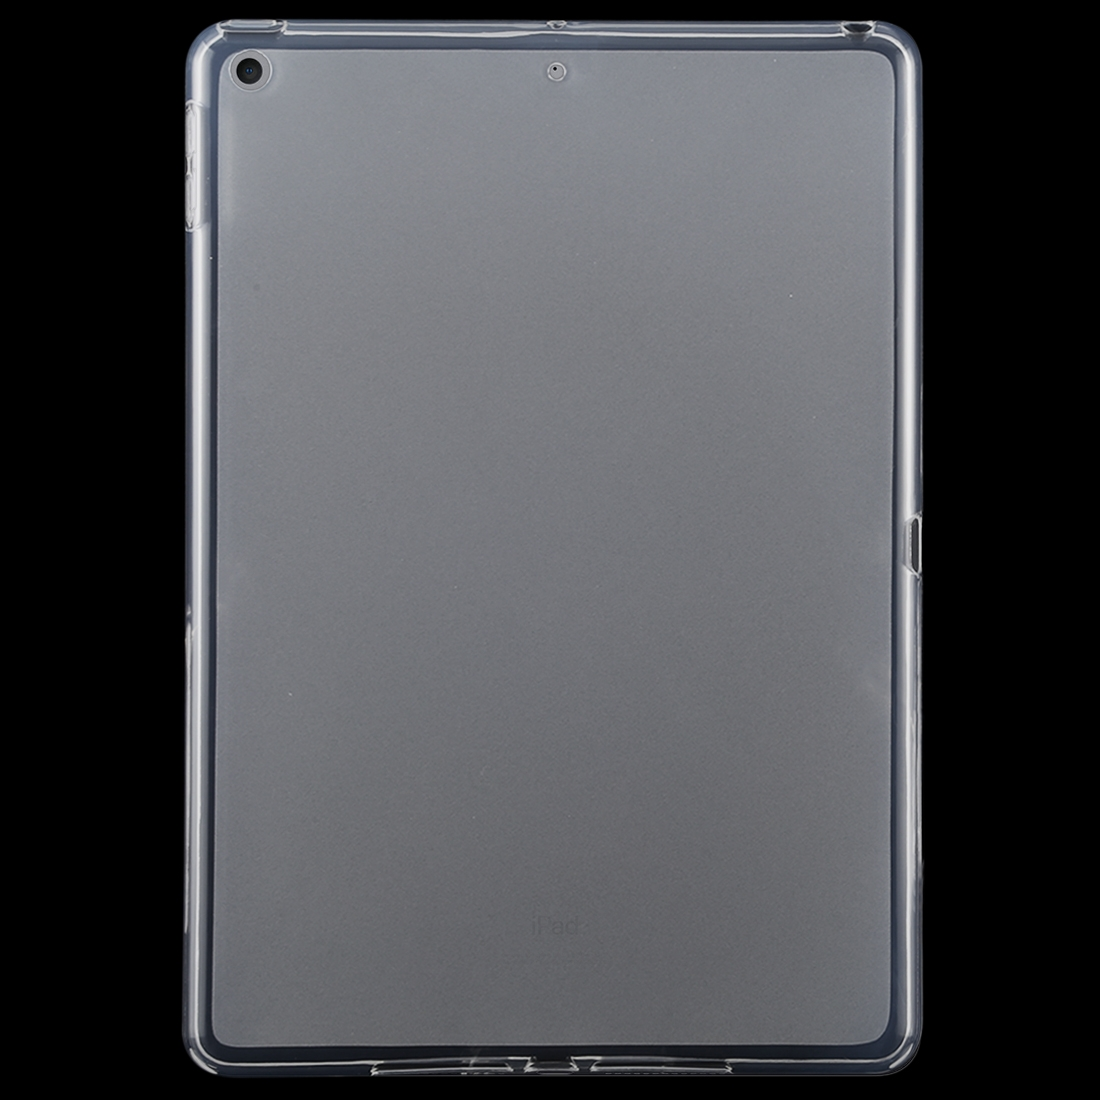 Frosted 3mm Transparent Durable iPad 7th Generation Case (10.2 Inch)